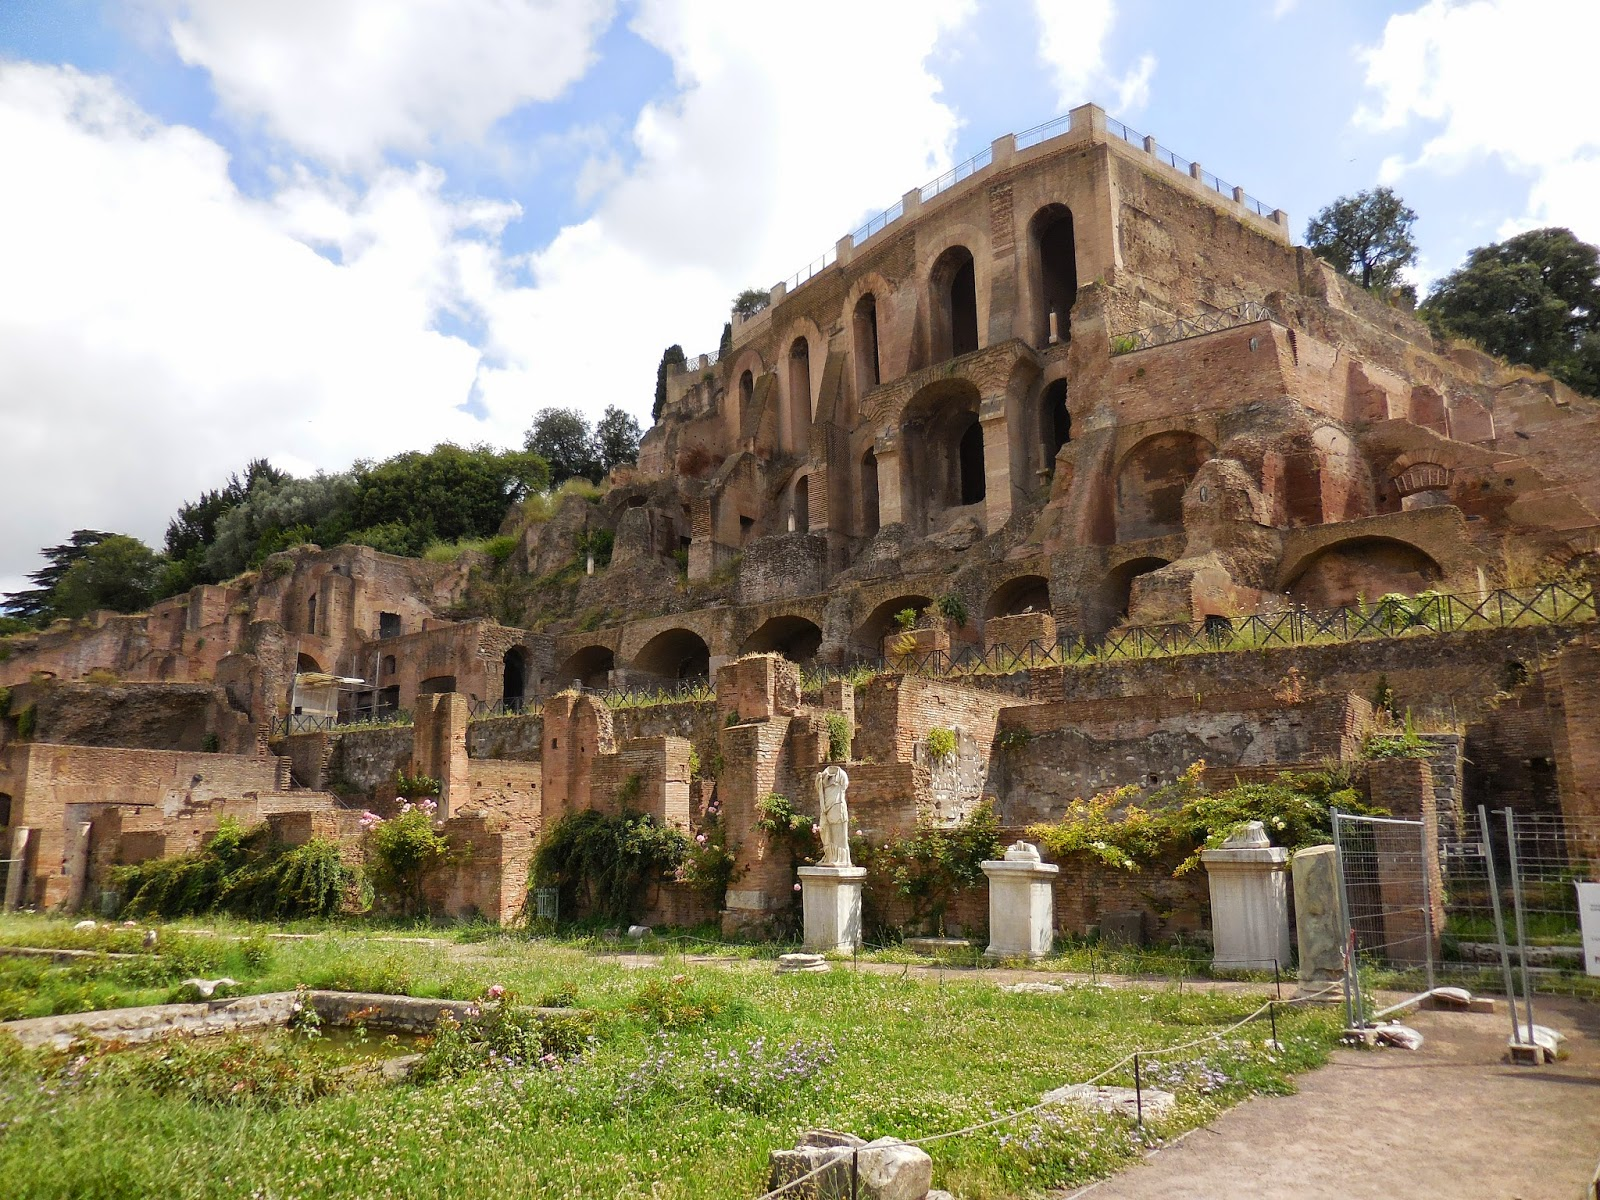 Palatine Hill Rome, The Thrifty Gypsy's Travels : The Roman Forum & Palatine Hill